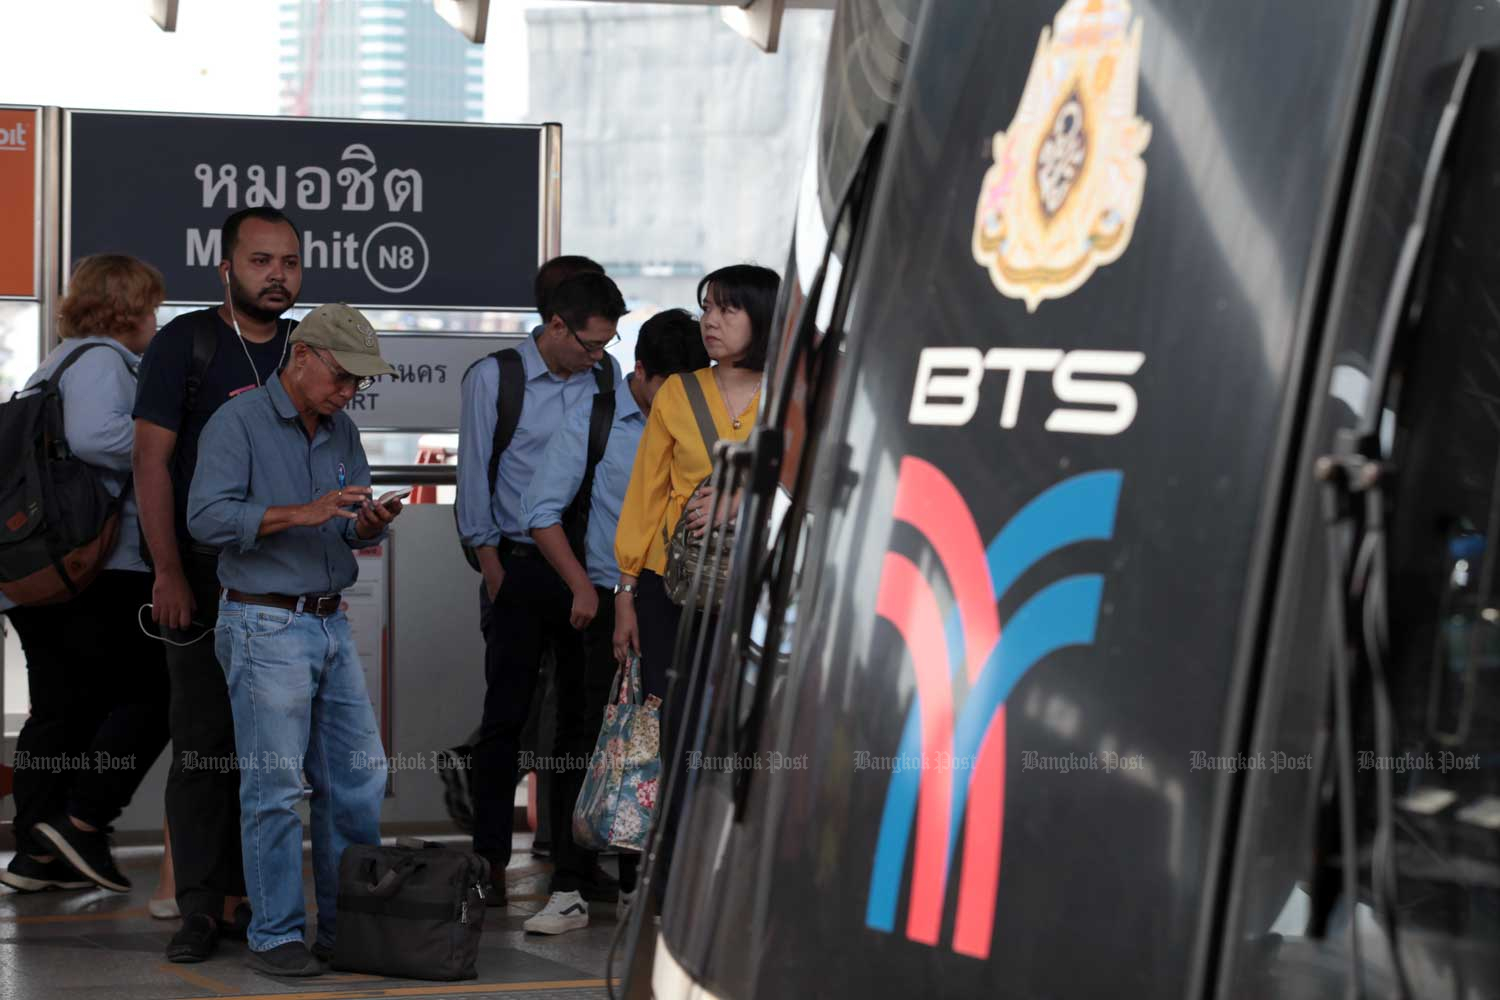 BTS passengers will receive a full refund if a train is delayed more than 30 minutes, according to a Department of Rail Transport source. (Photo by Chanat Katanyu)